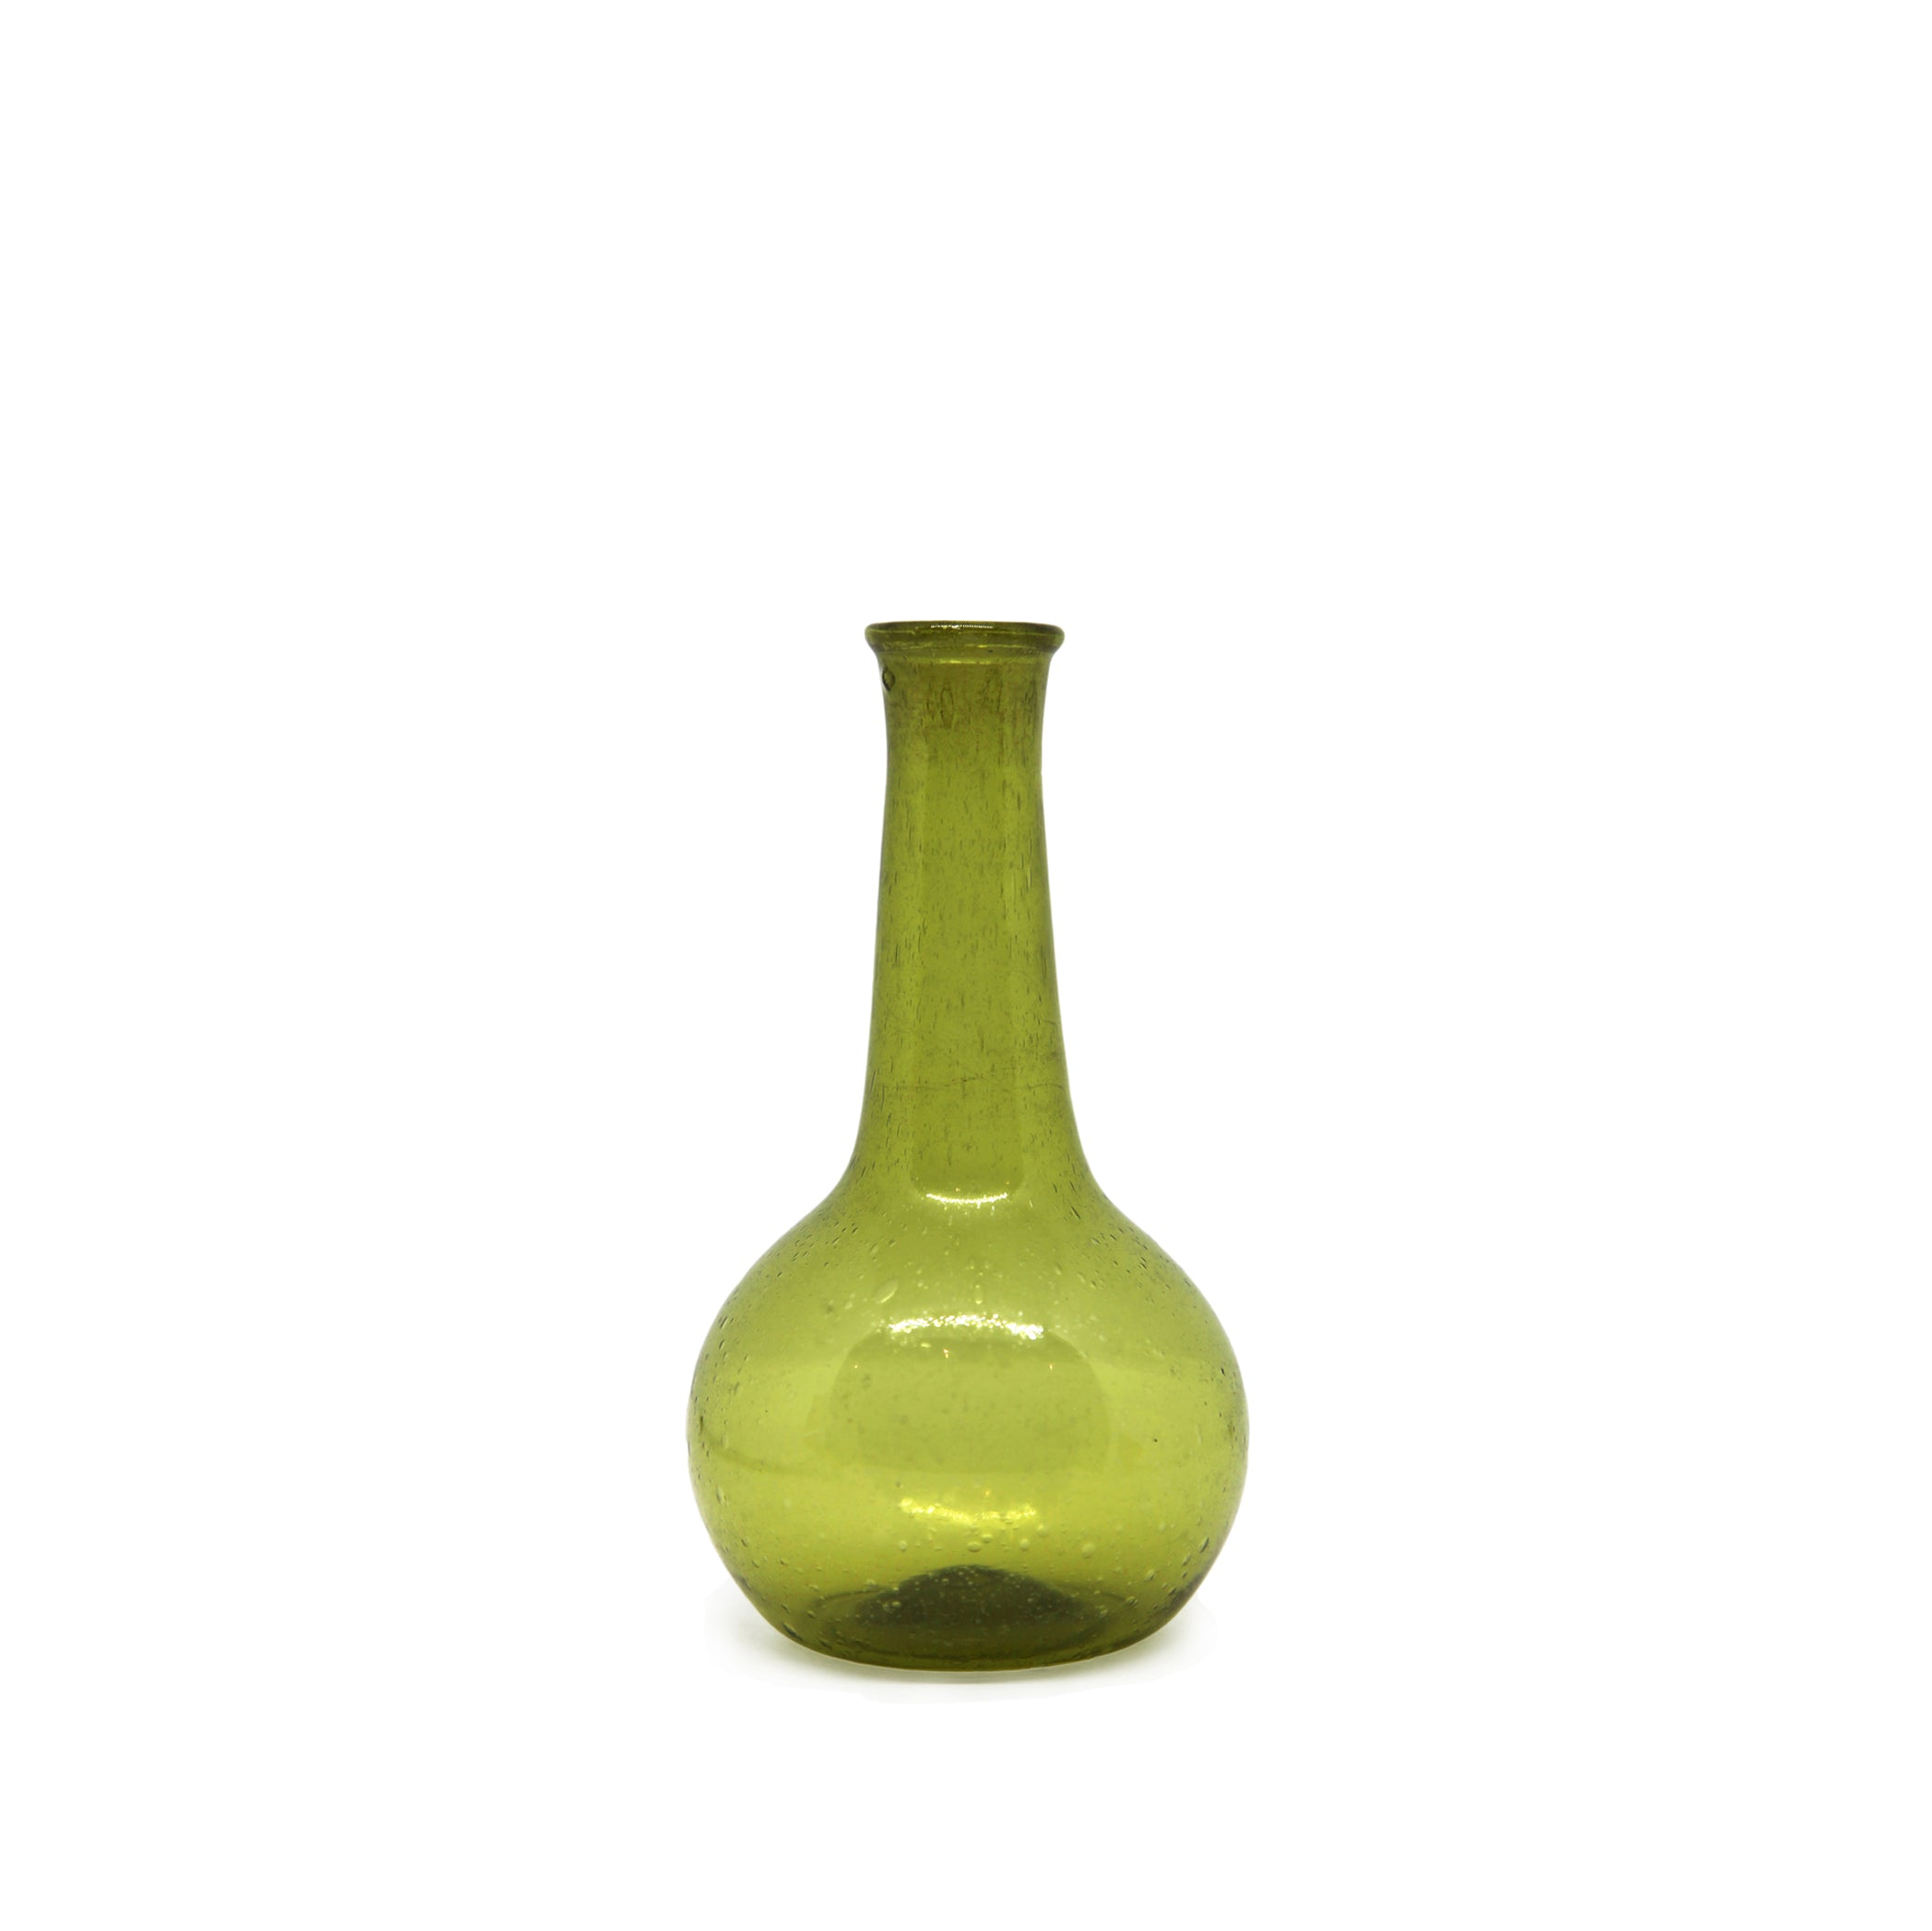 Recycled Glass Pharmacy Vase in Green, 12cm